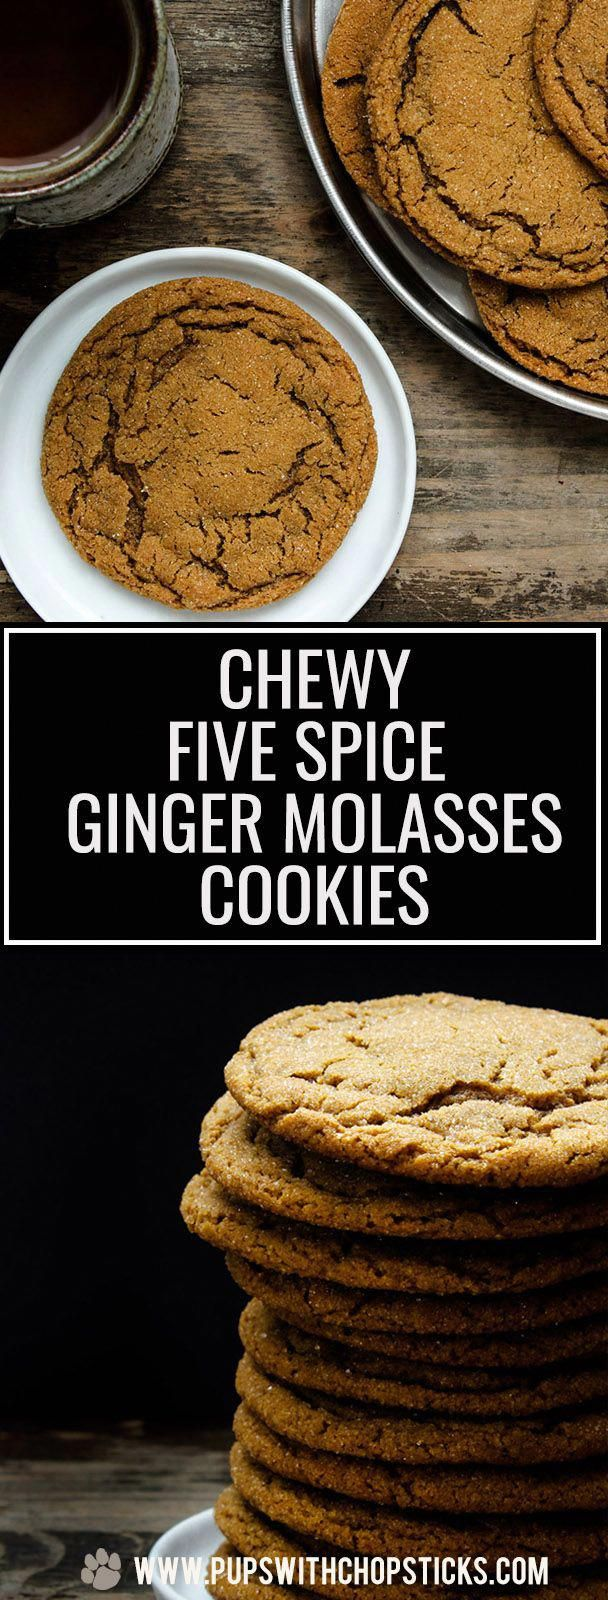 Photo of Chewy Five Spice Ginger Molasses Cookies